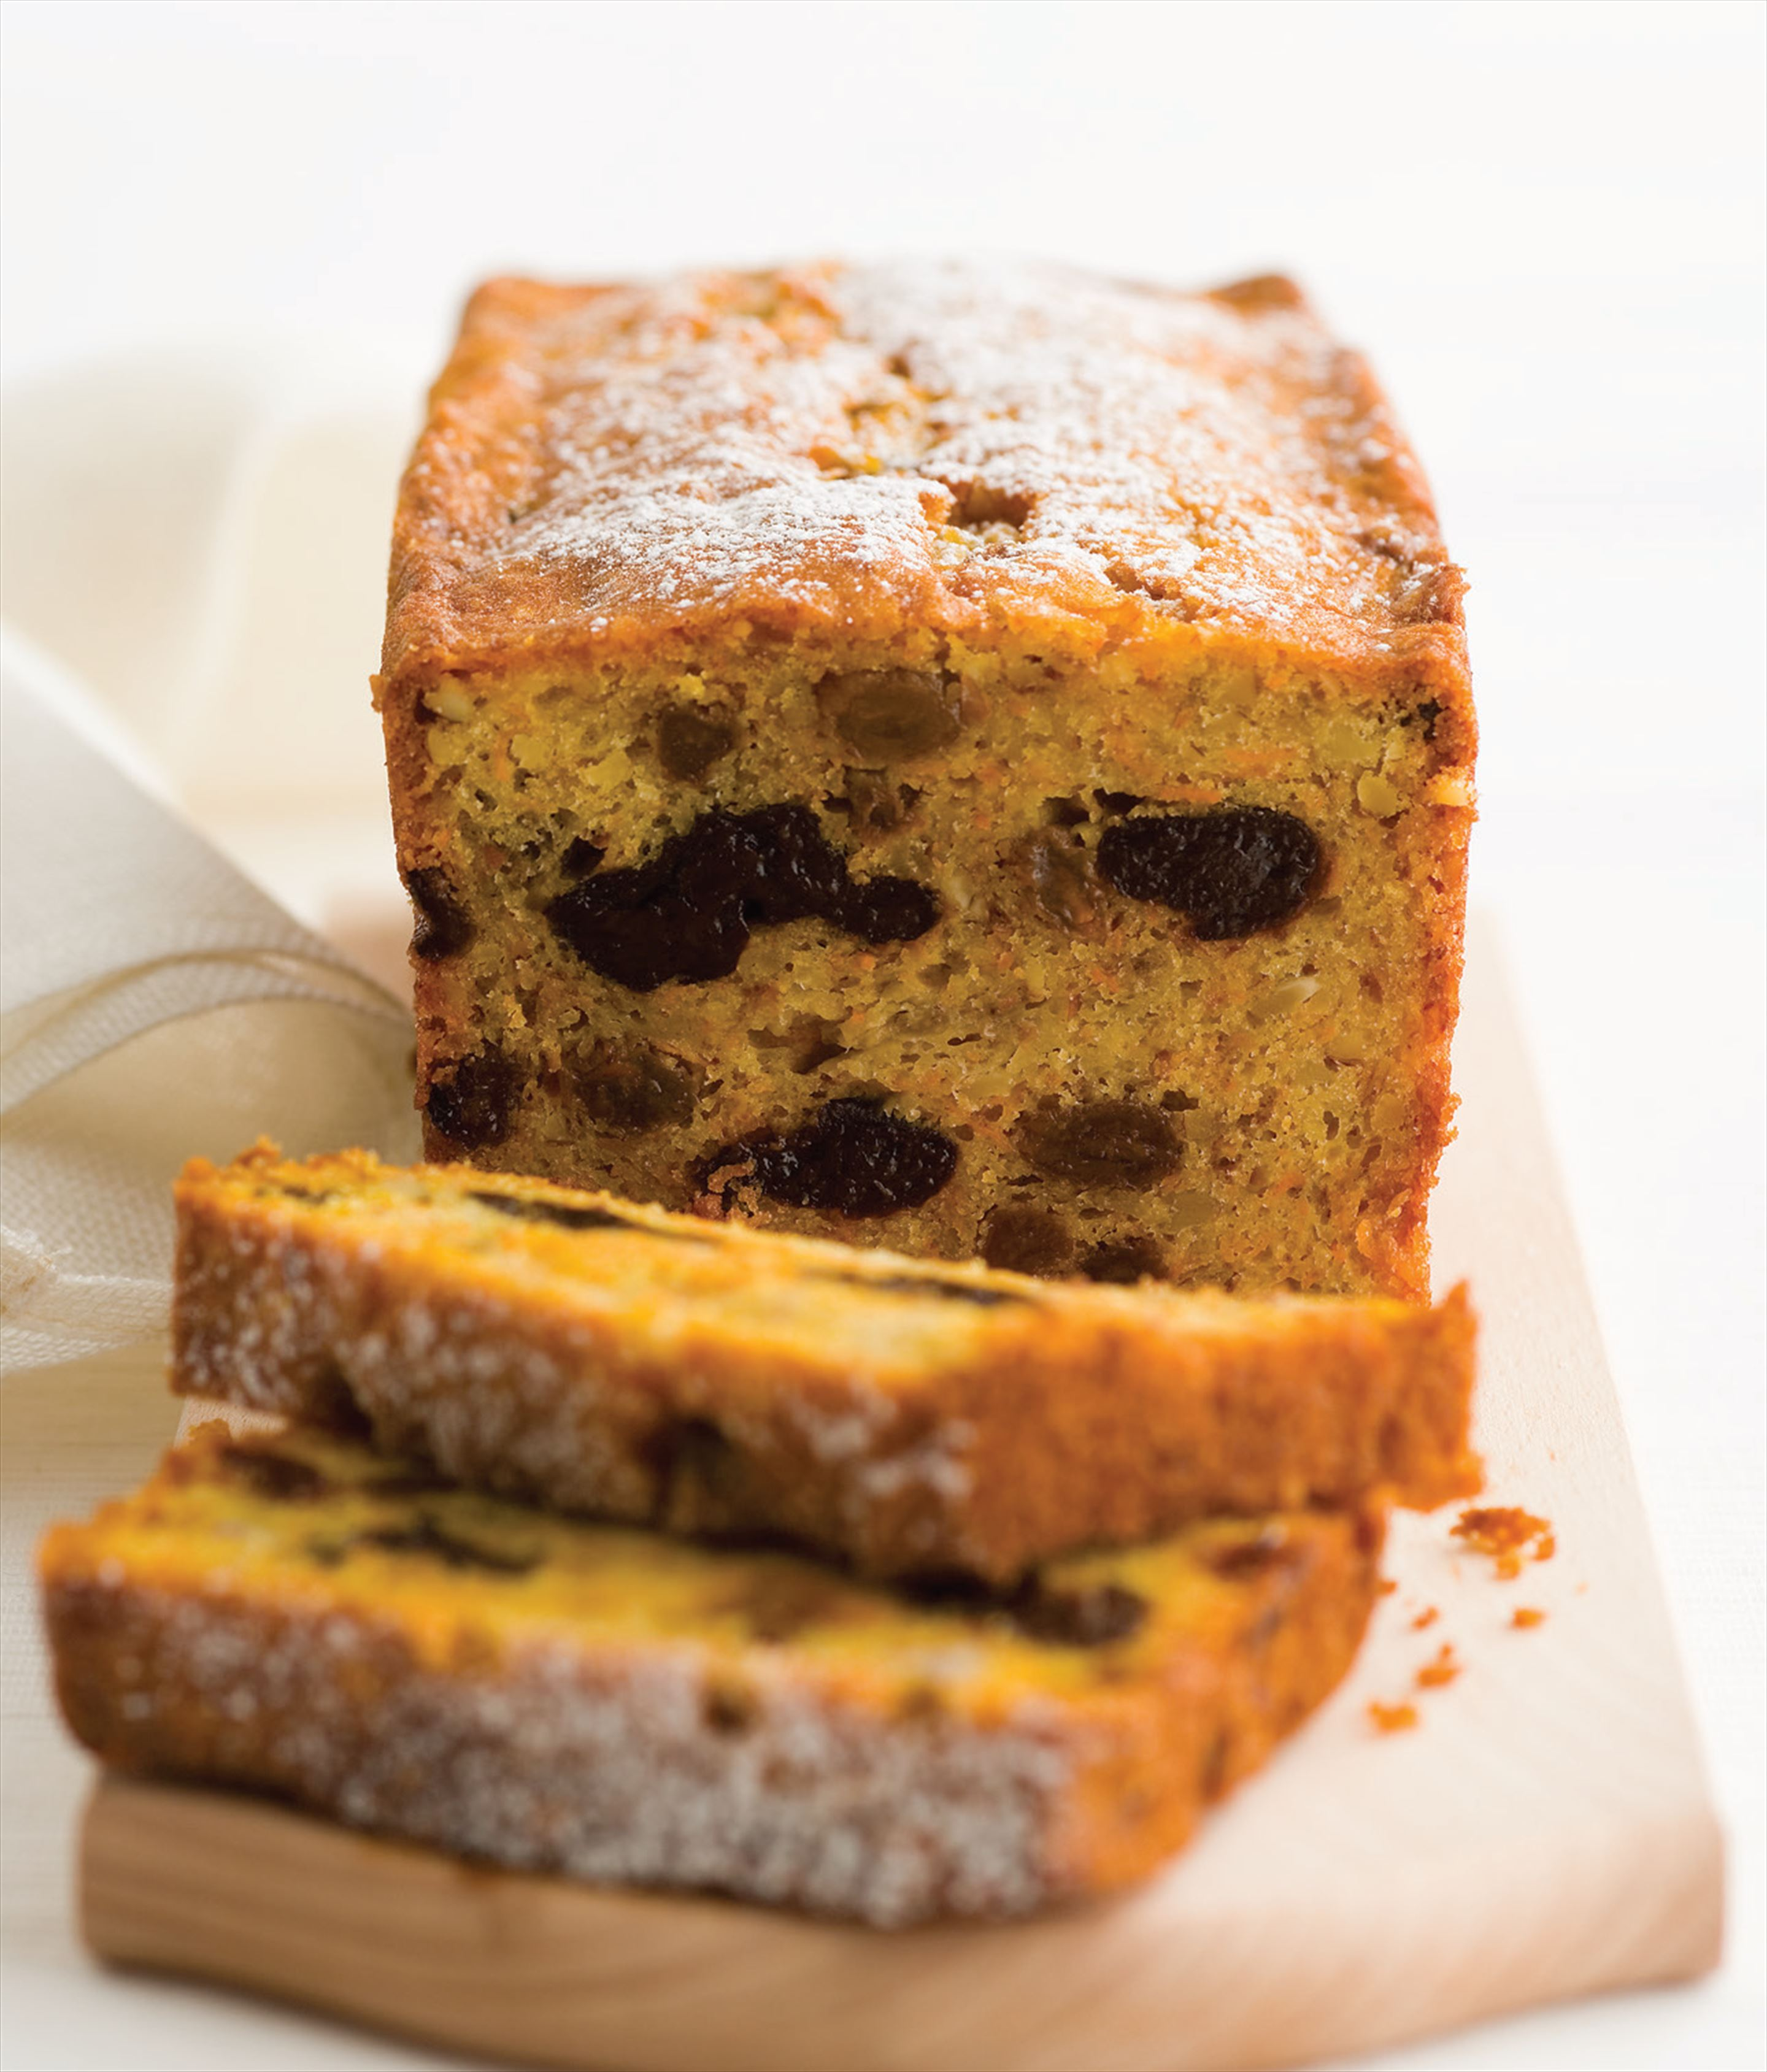 Banana, carrot and sultana loaf